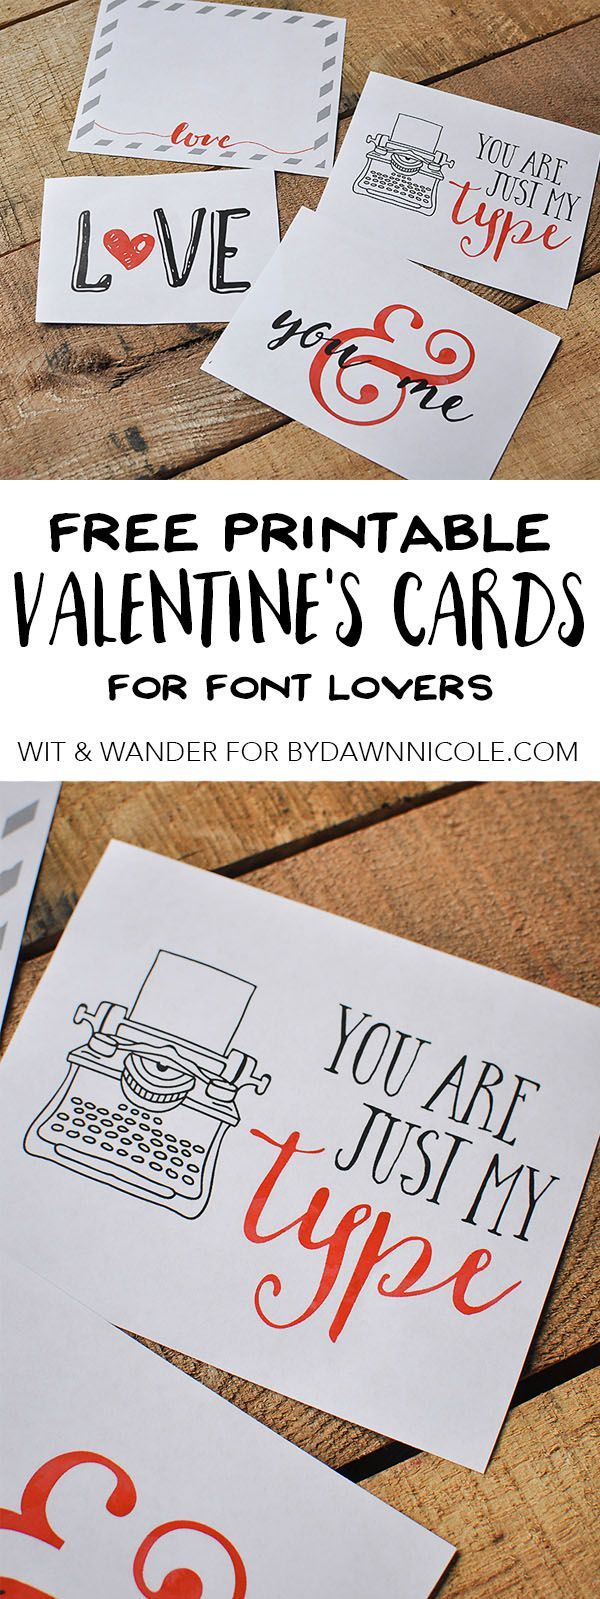 Free Printable FontLovers Valentines Day Cards  Dawn nicole